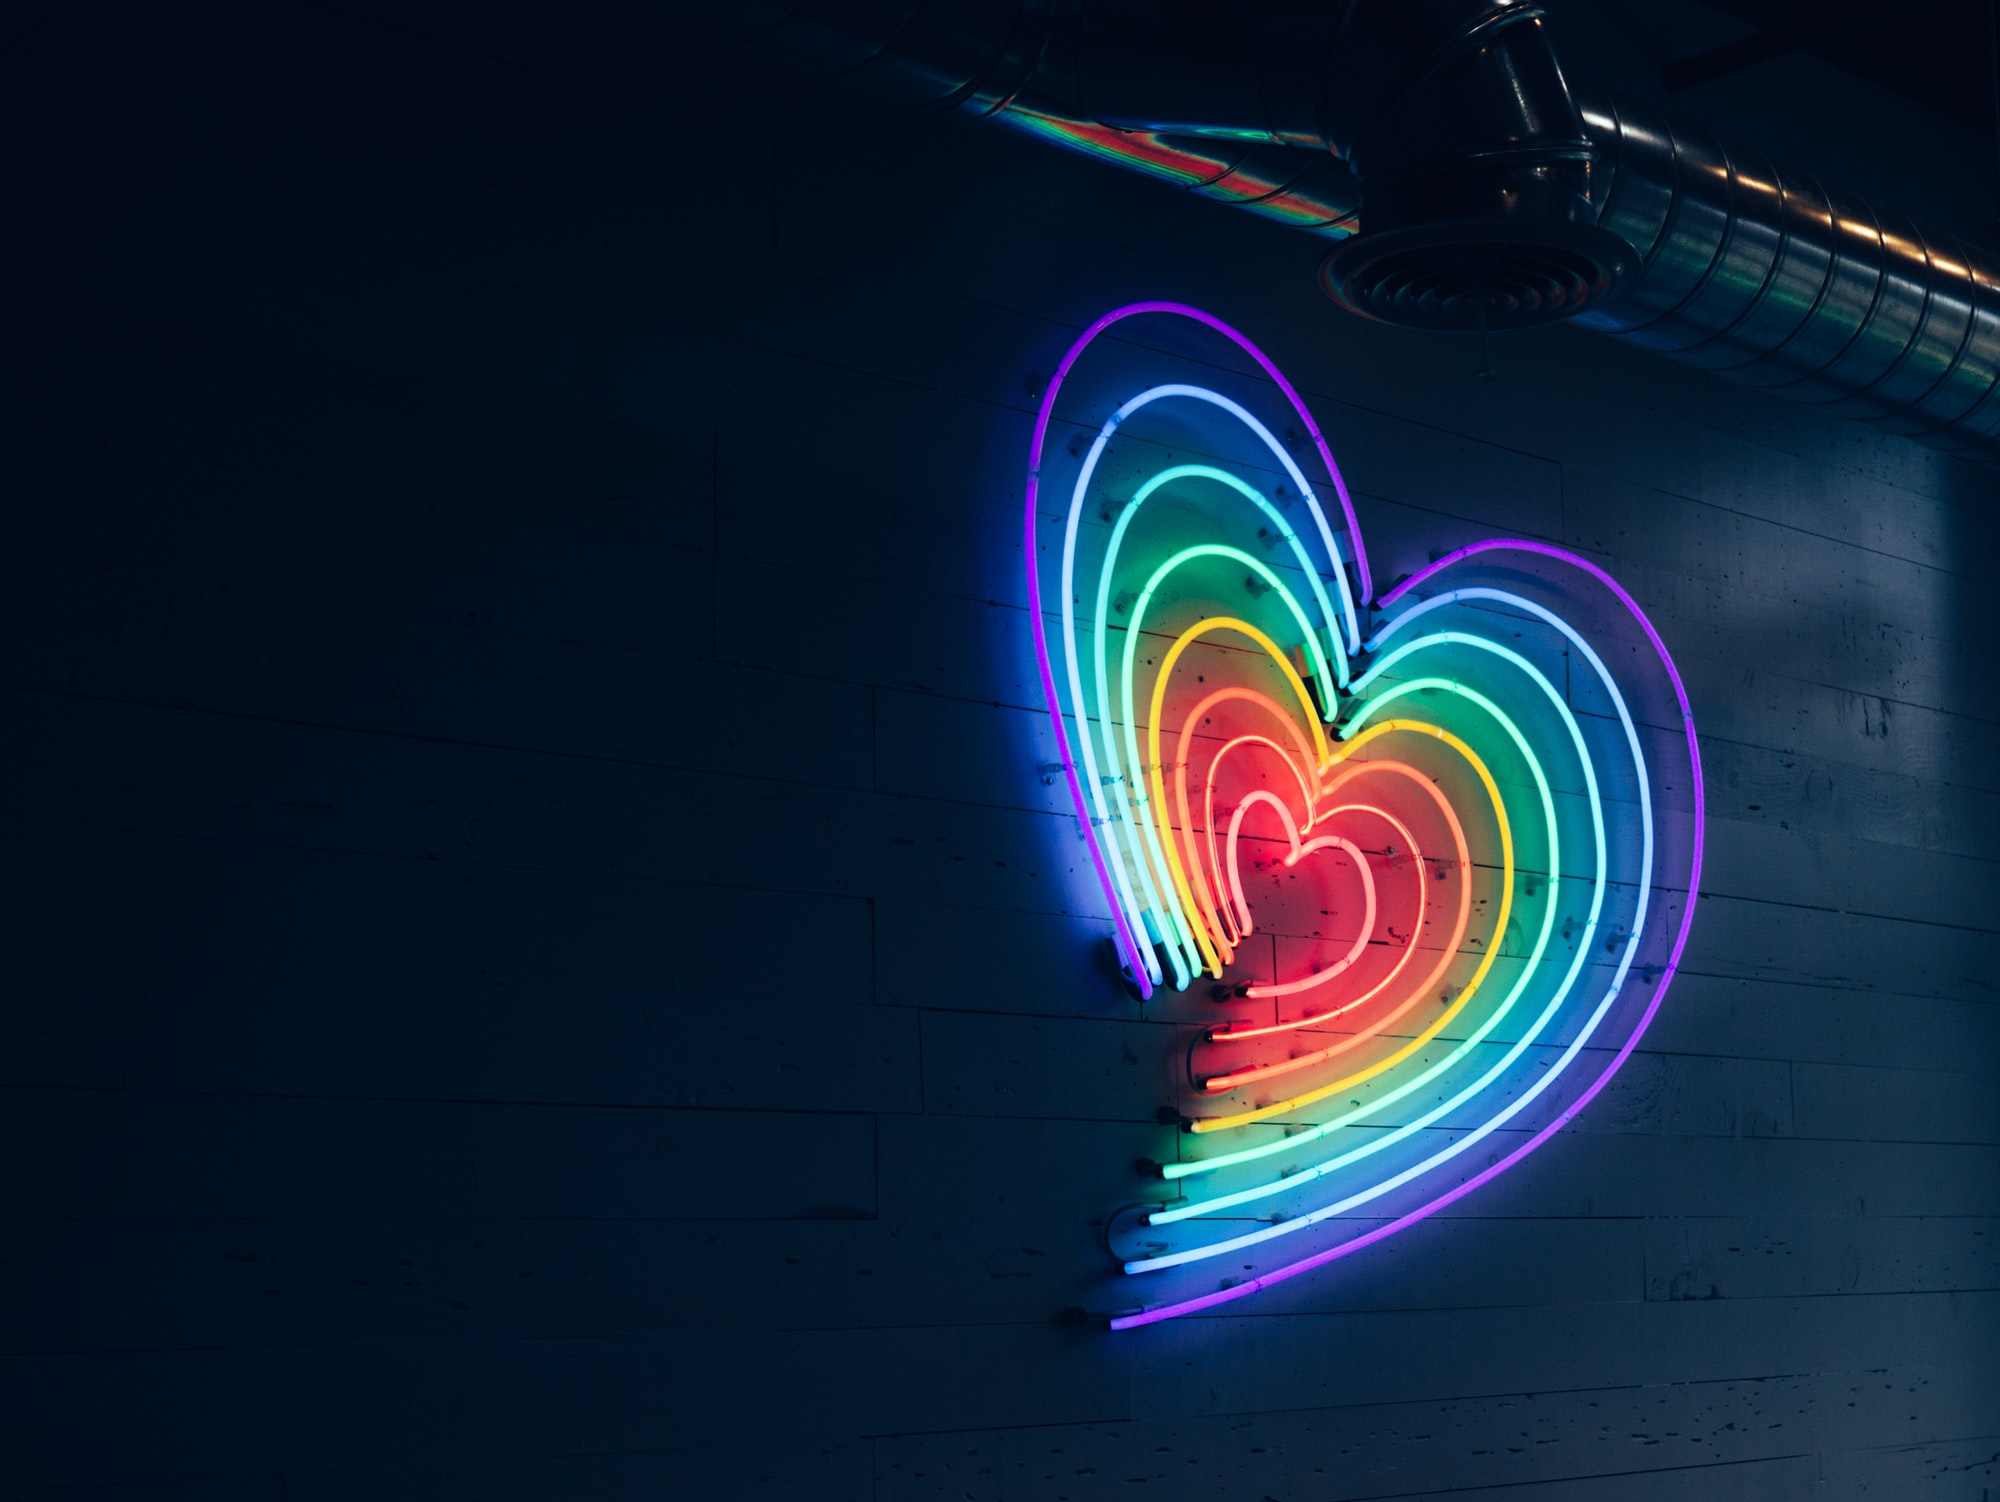 This new place called Locali opened 3 locations in L.A and in one of them I found this rainbow heart. Right in the middle of West Hollywood.